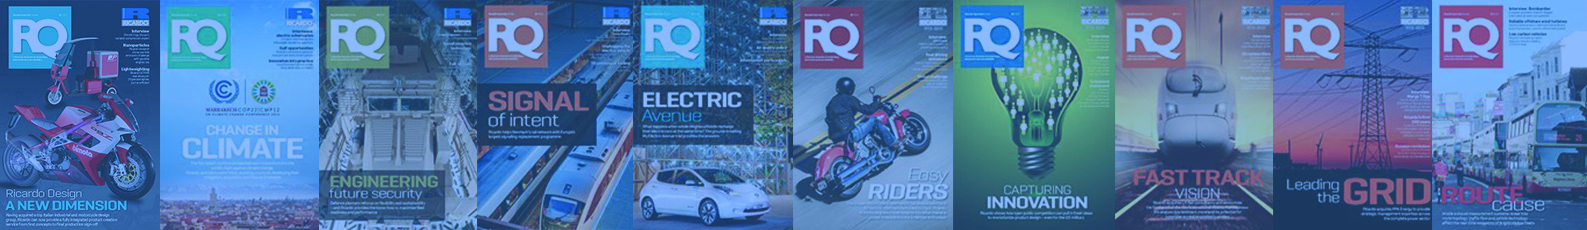 Ricardo Quarterly magazine